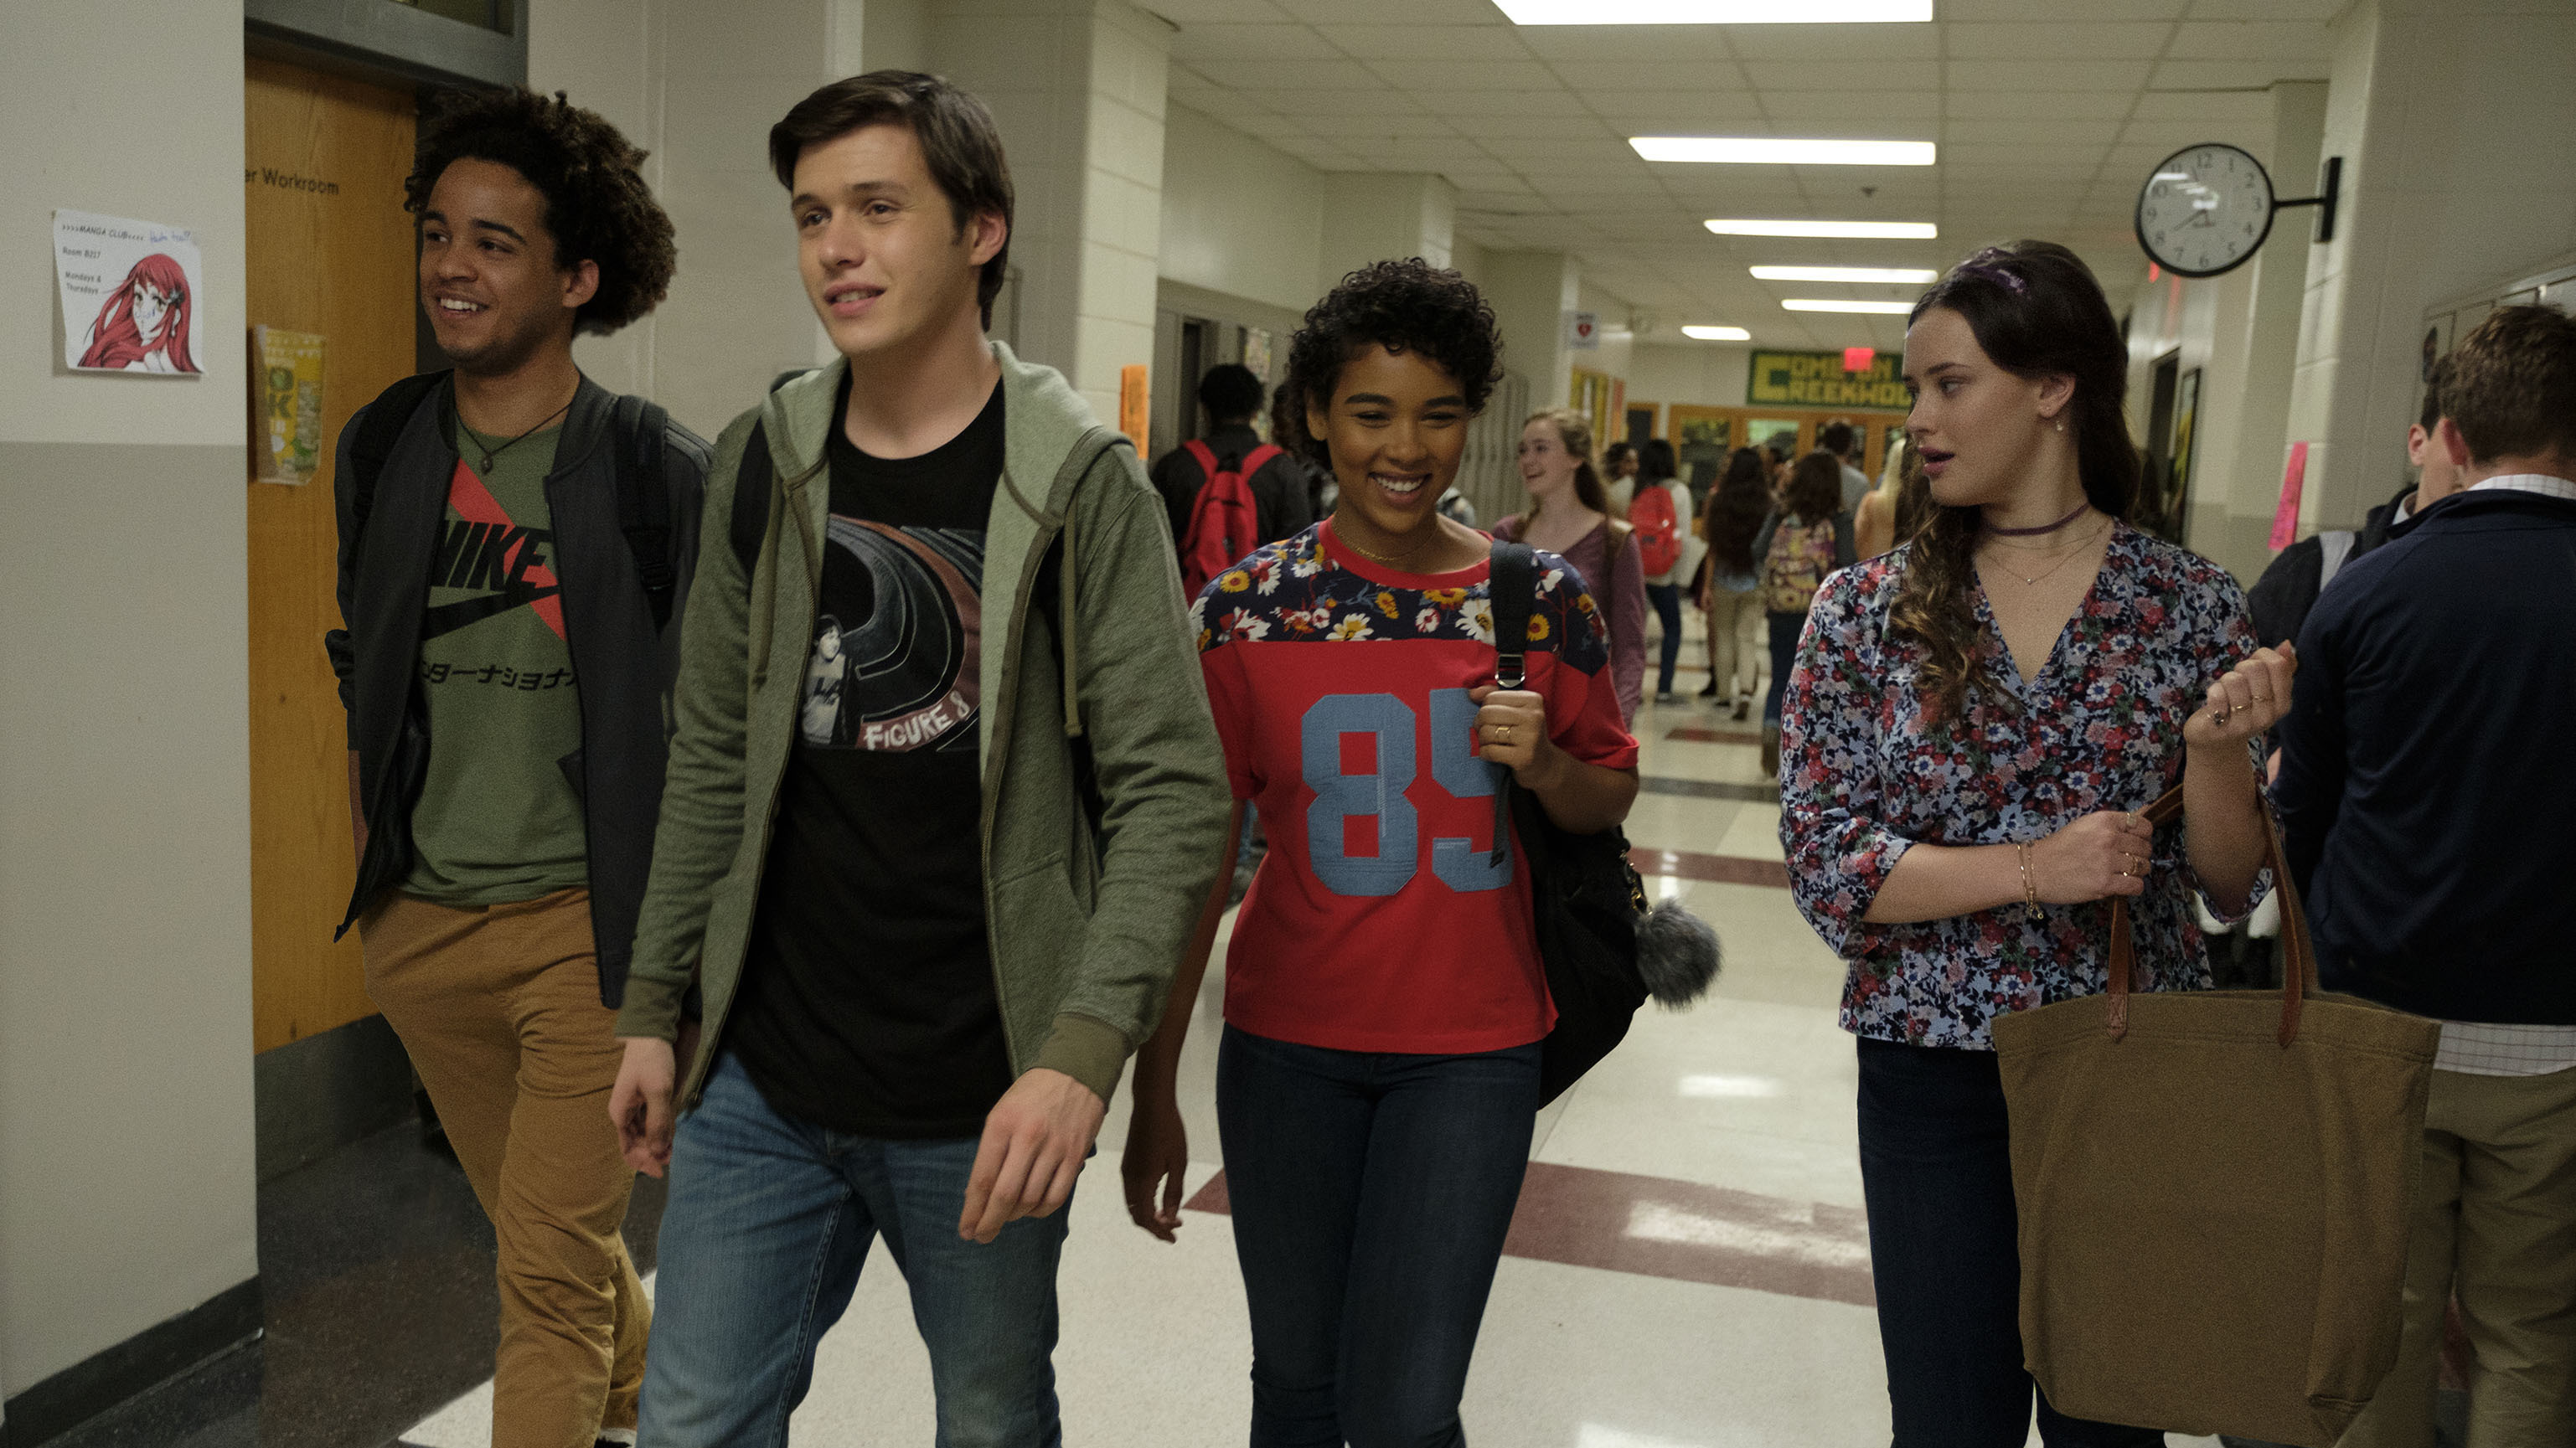 'Love Simon' Is Your Typical Glossy Hollywood Teenage Gay Rom-Com